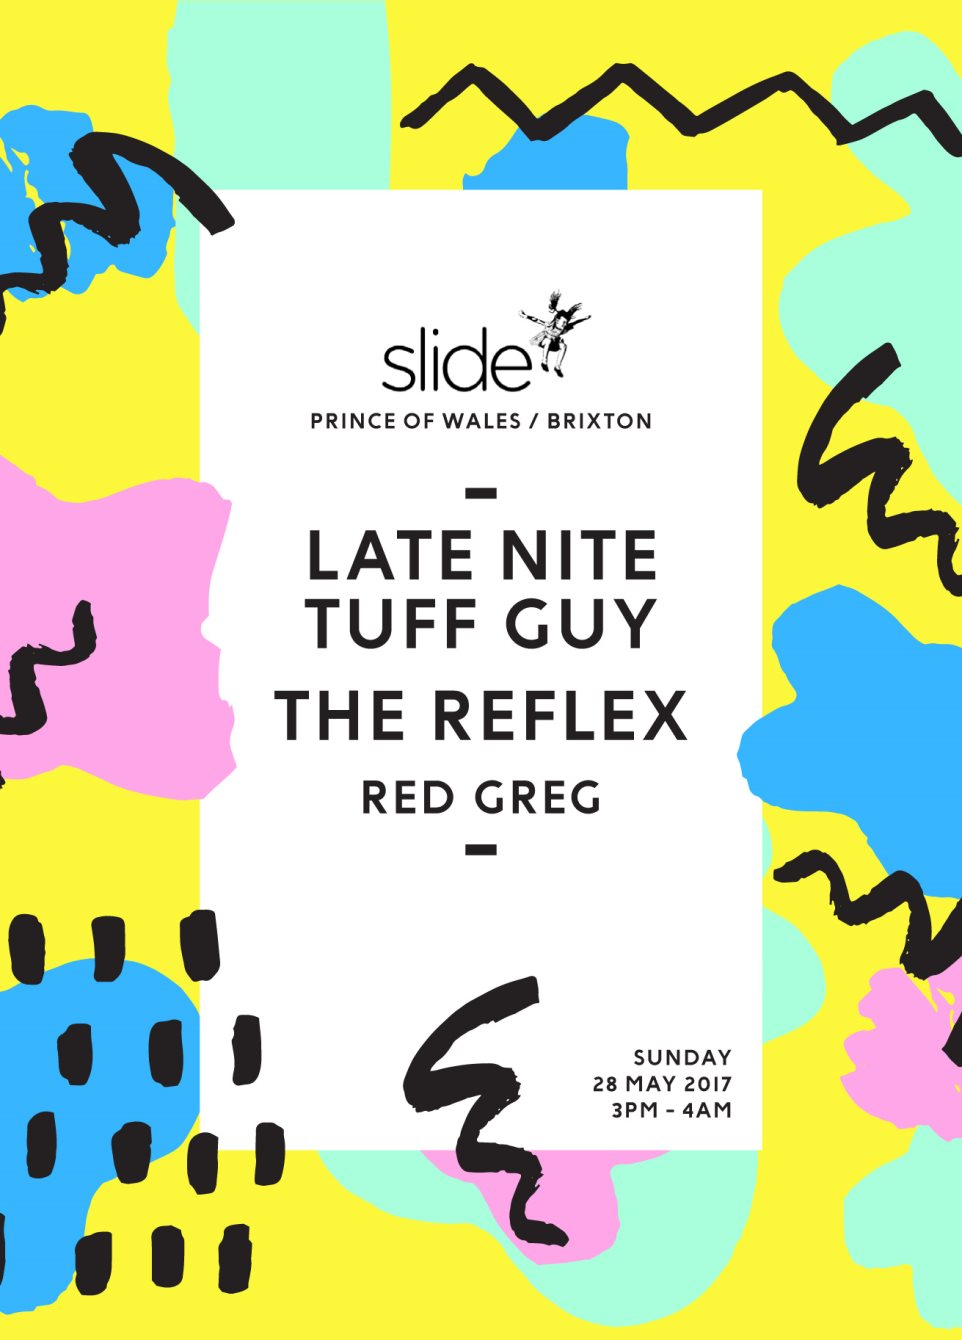 Slide with Late Nite Tuff Guy, The Reflex & Red Greg - Flyer front